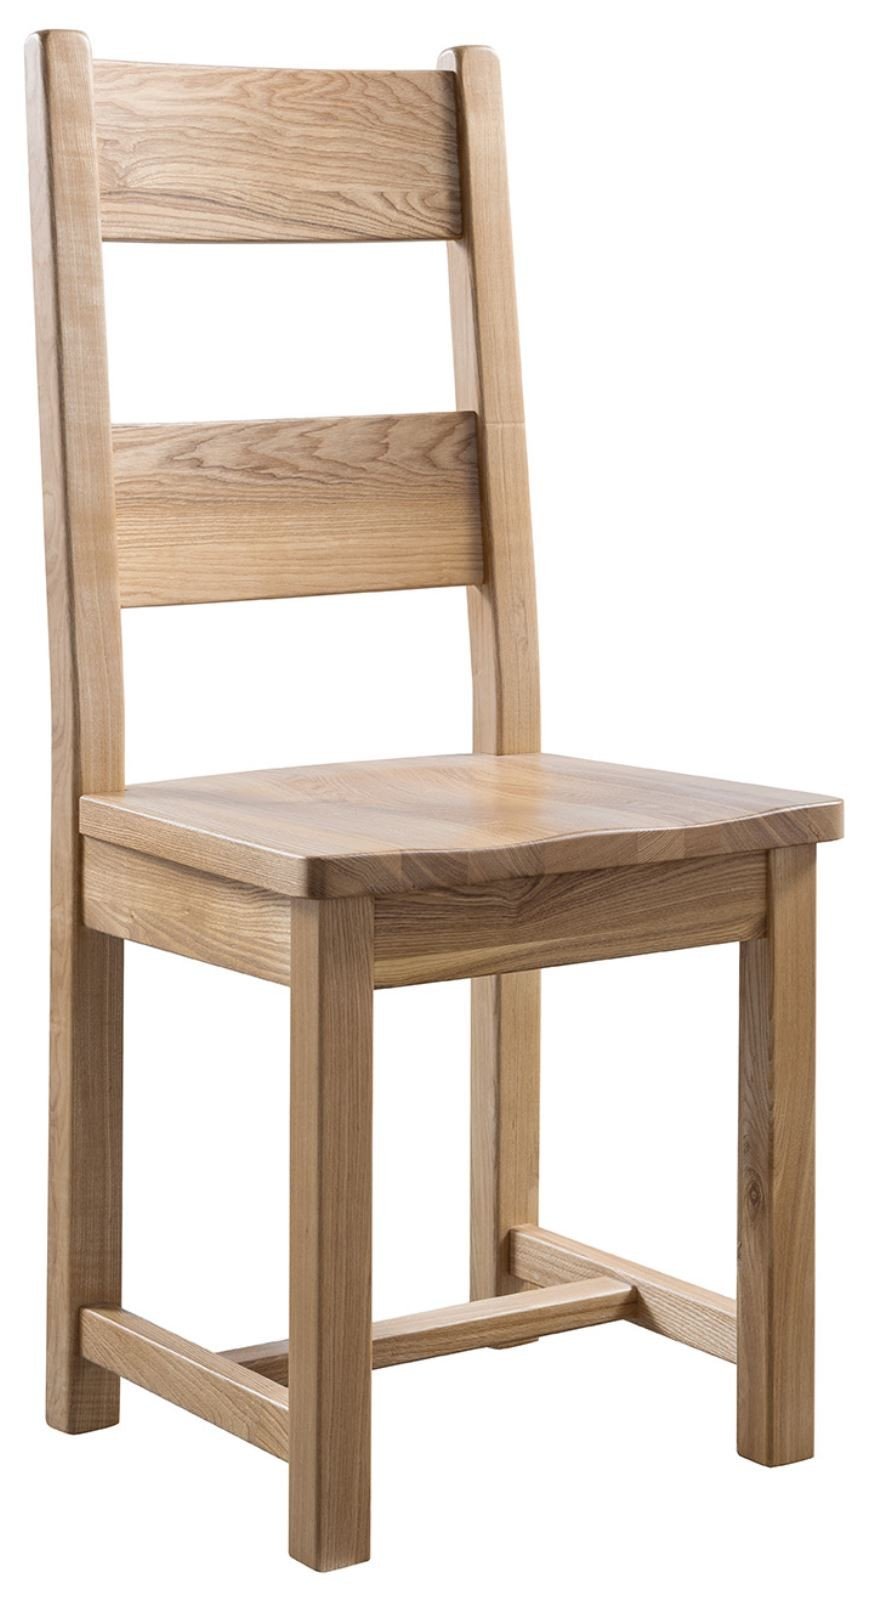 CRAVEN Farmhouse Dining Chair with wooden seat